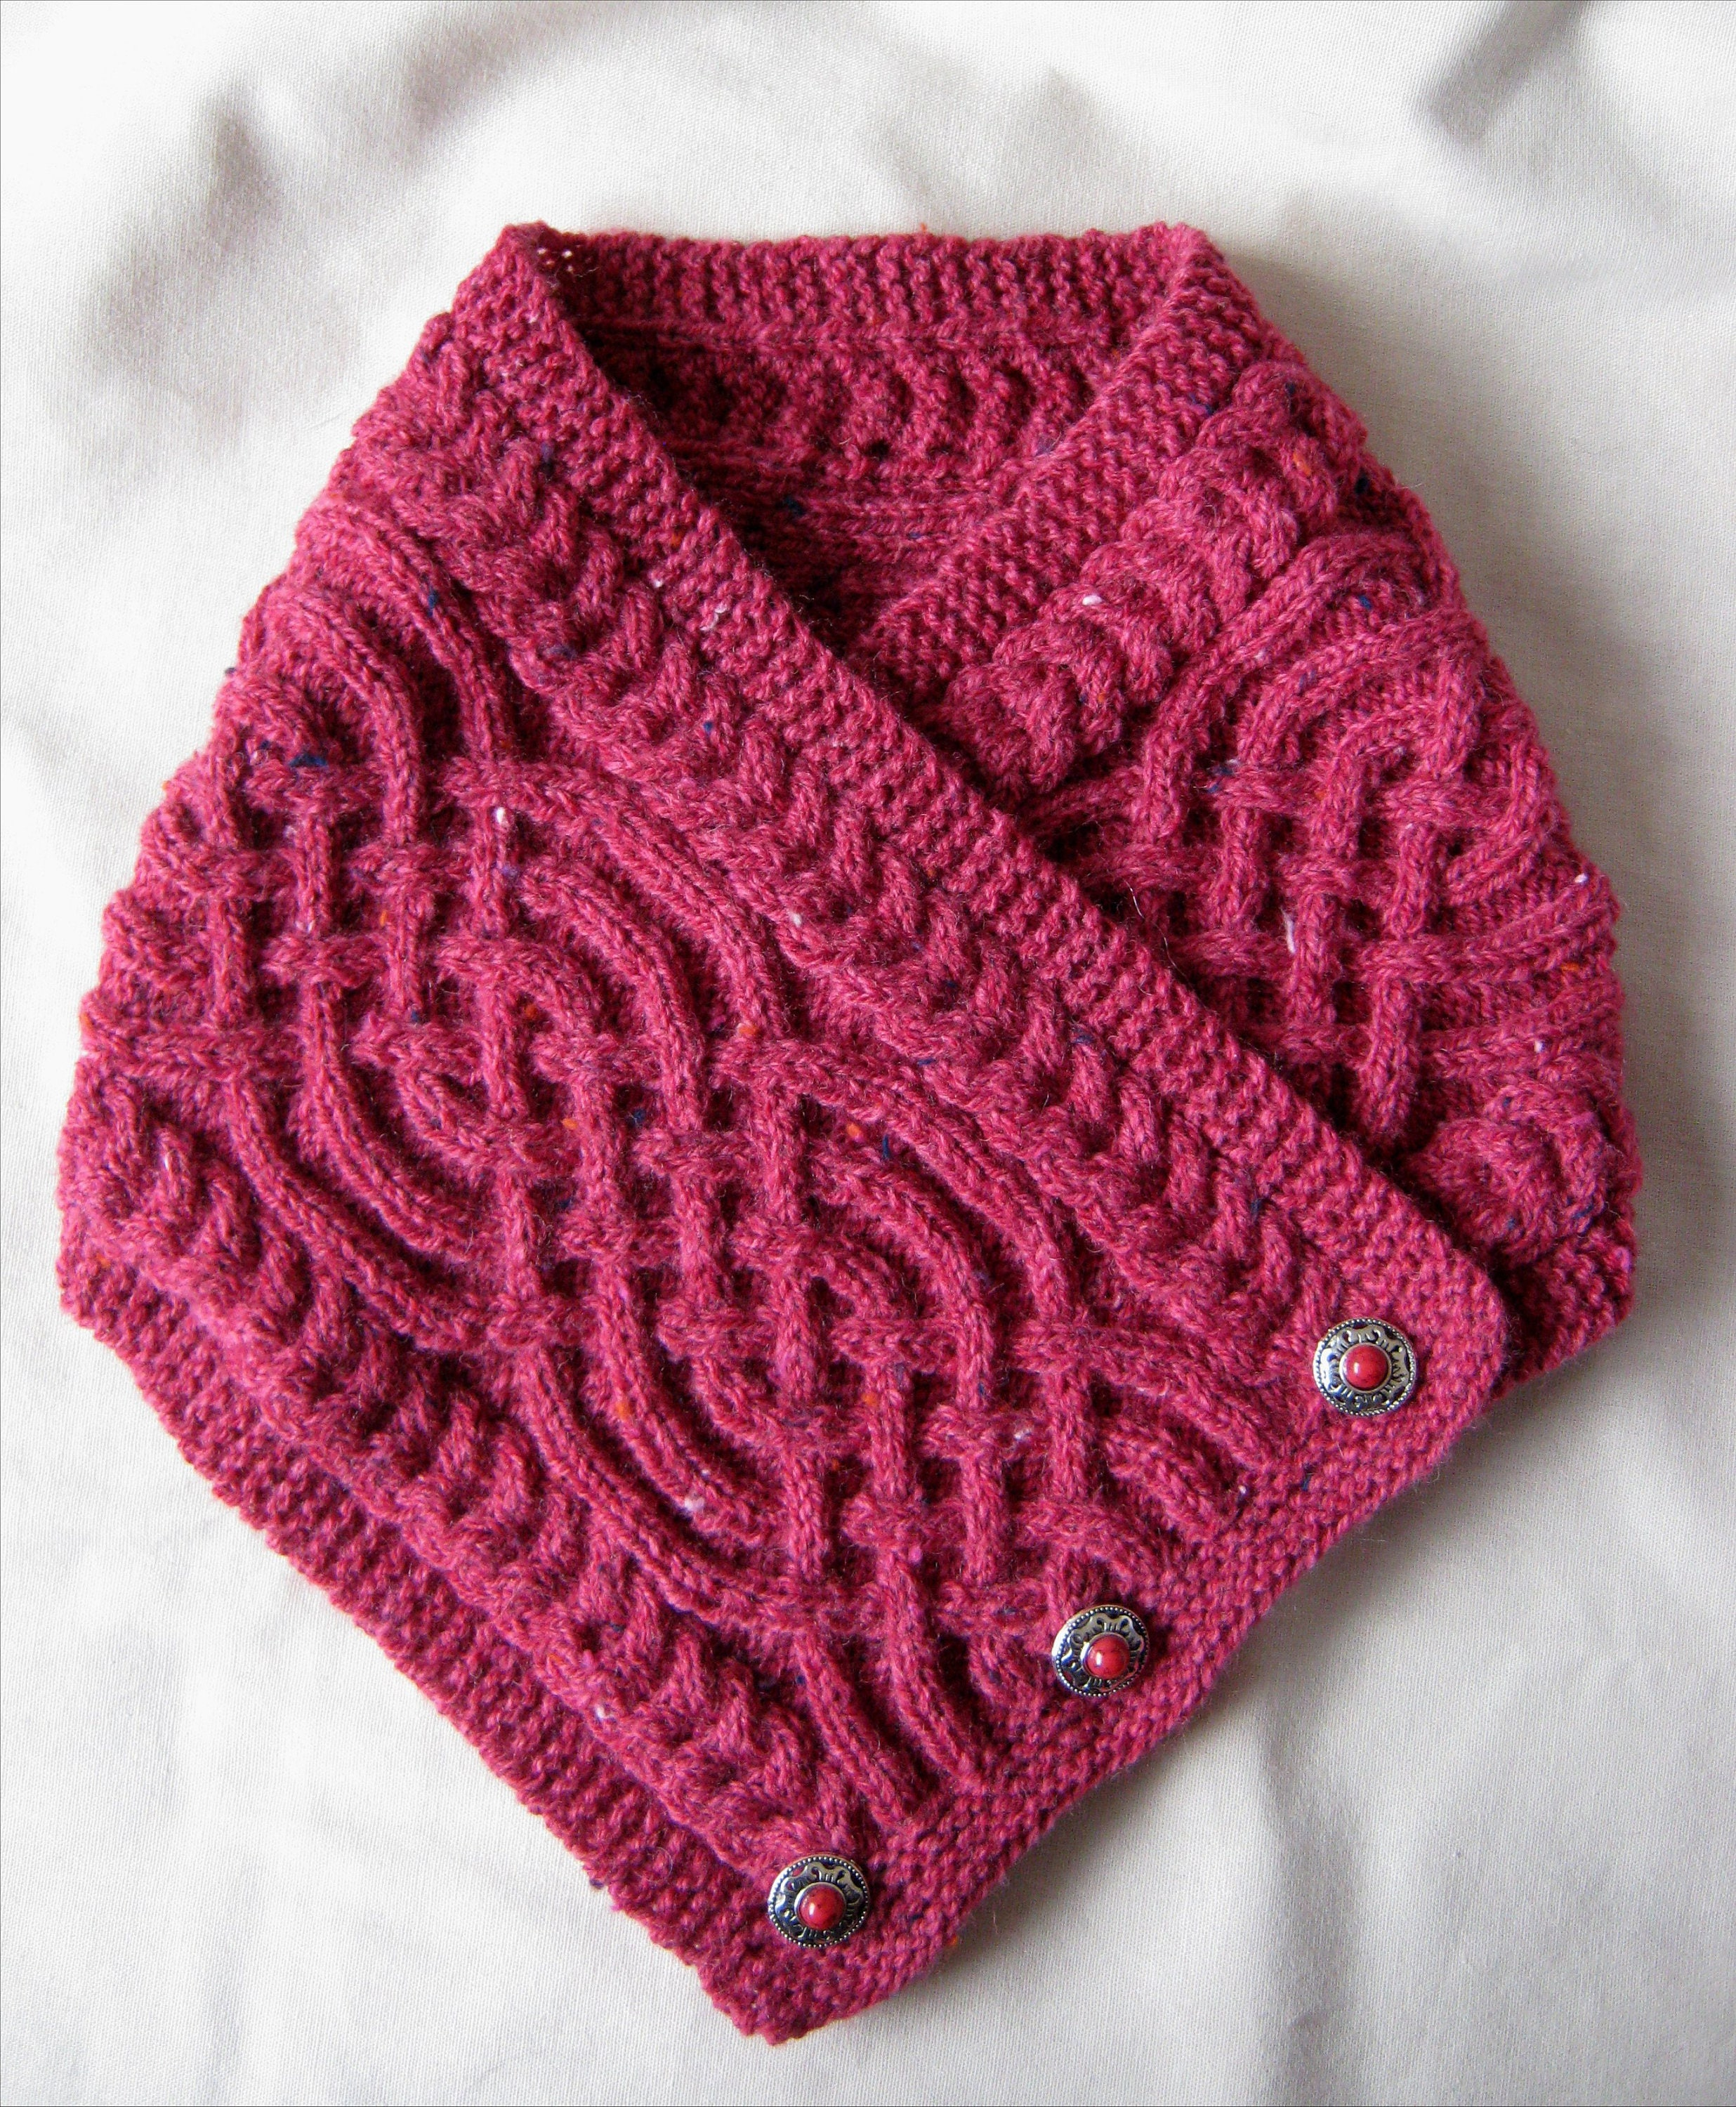 1a3f1f3583c8bf Hand knitted rose red Saxon Braid pattern Celtic cable neckwarmer with wood  button fastening - nylon wool acrylic viscose mix  E10190947031520344M  -   19.99 ...